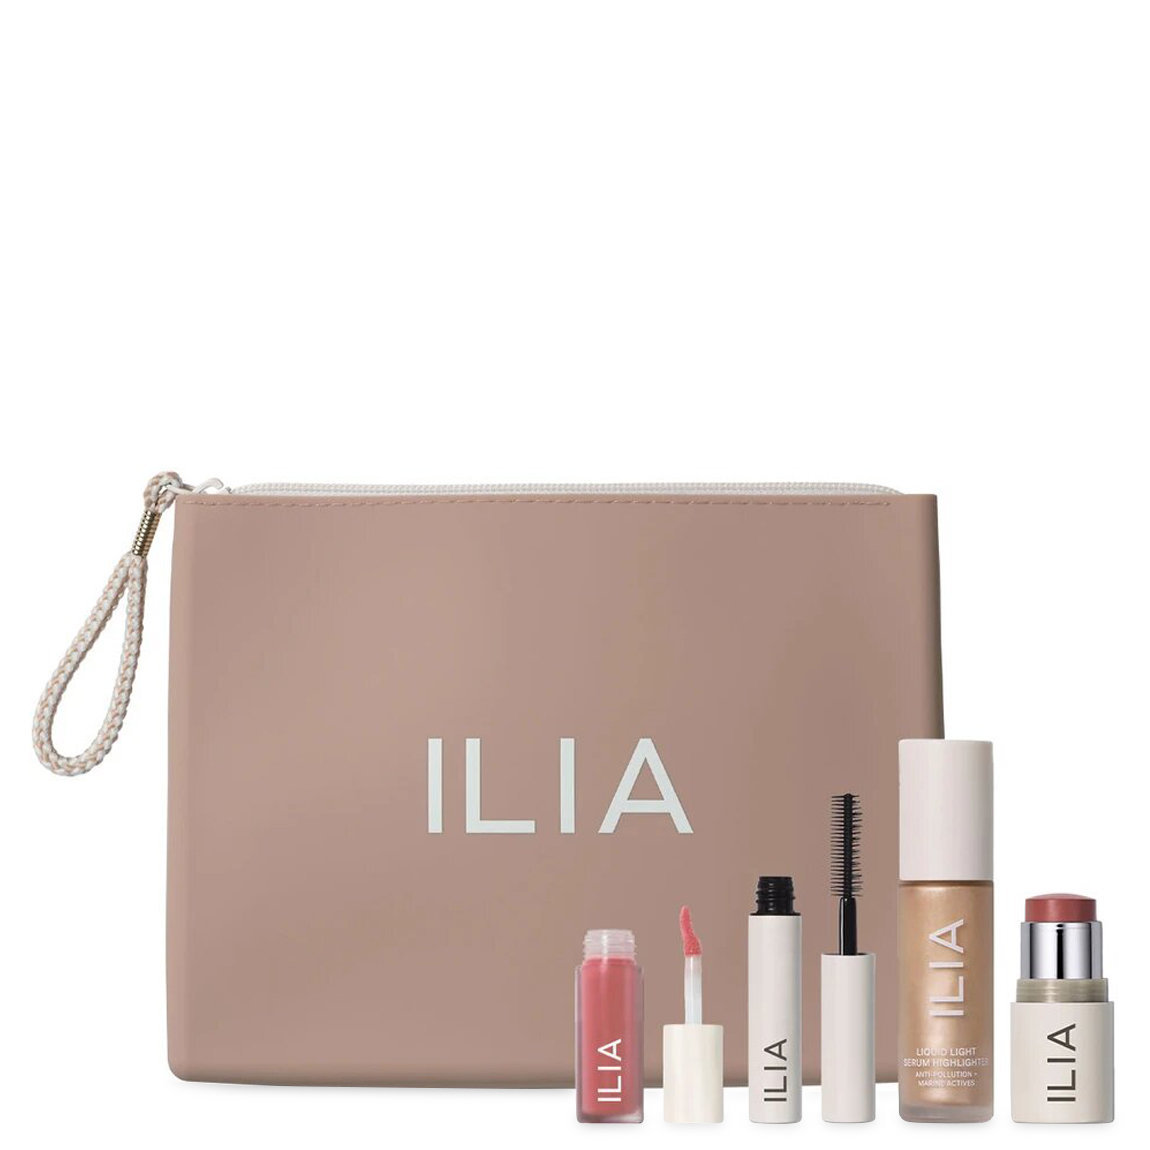 ILIA Hello, Clean Makeup Set product swatch.